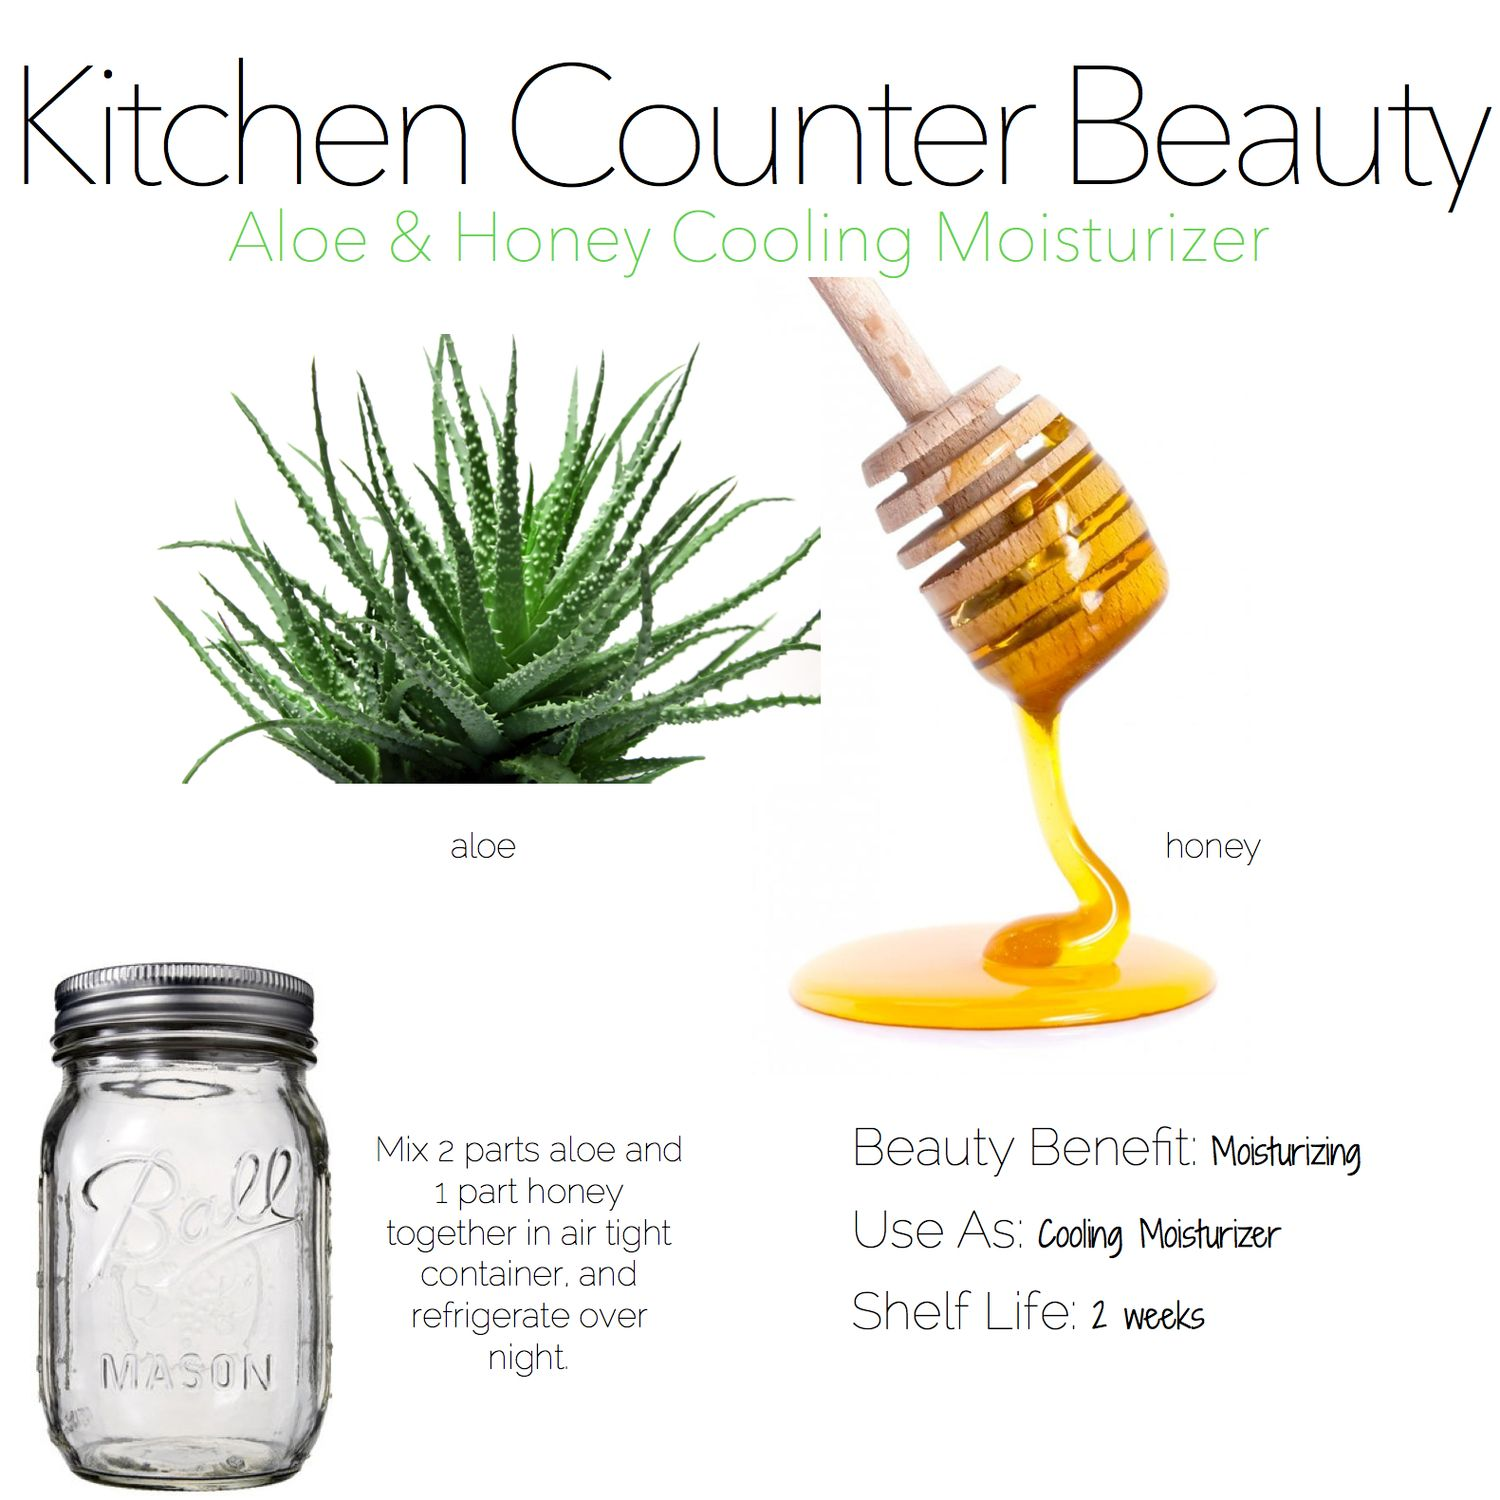 Make it yourself-- Aloe and Honey cooling moisturizer from @obs form Gadabout.com